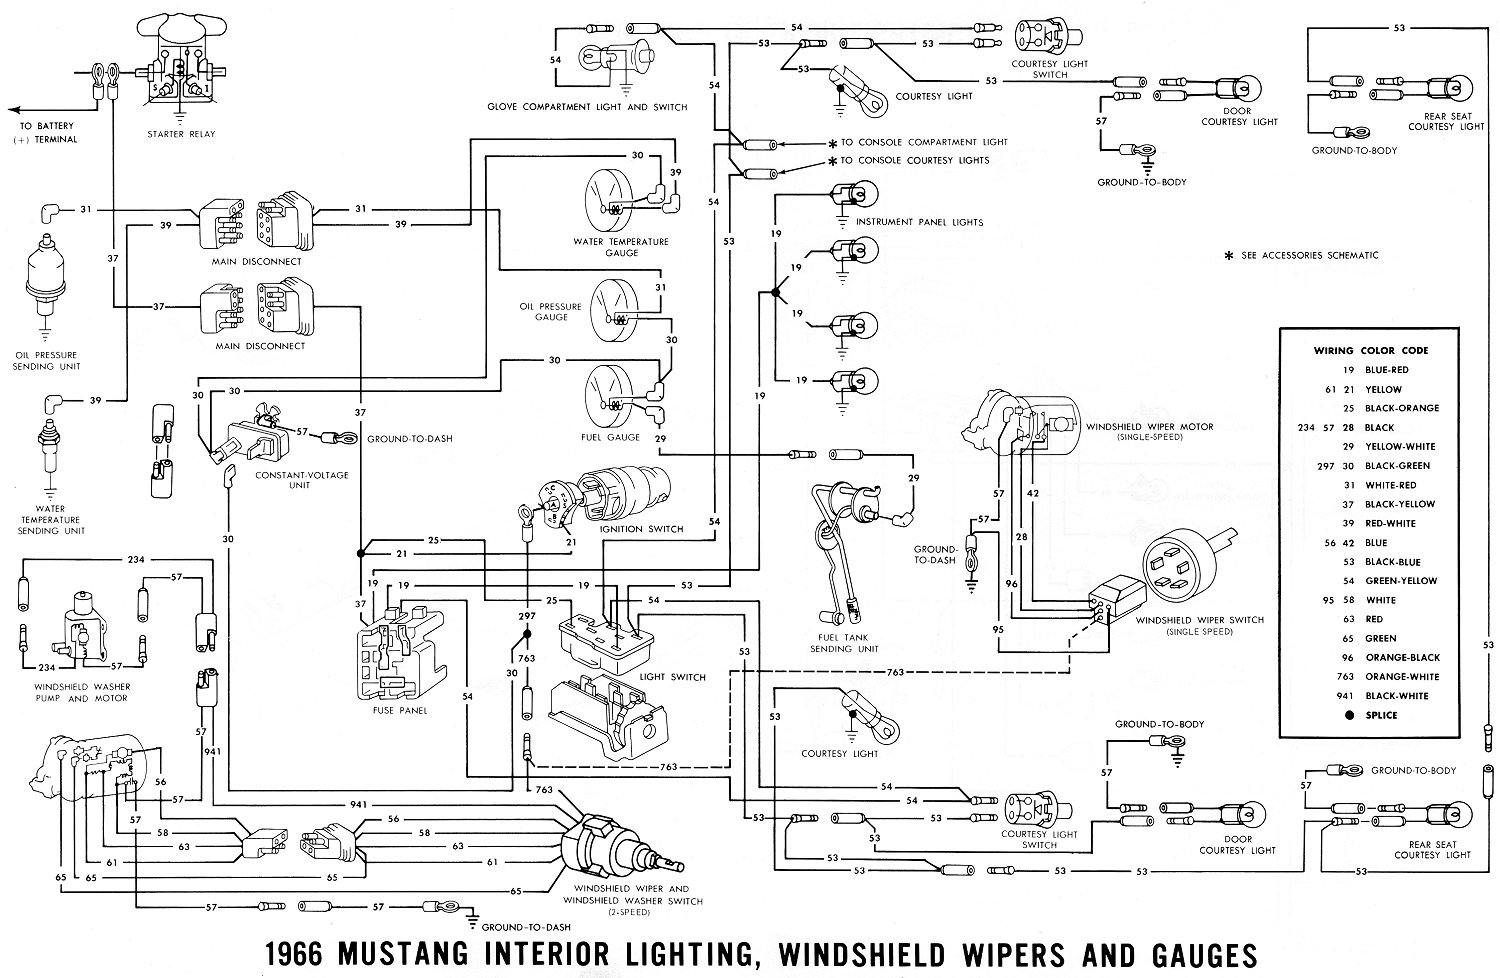 1966 Mustang Wiring Diagrams - Average Joe Restoration on